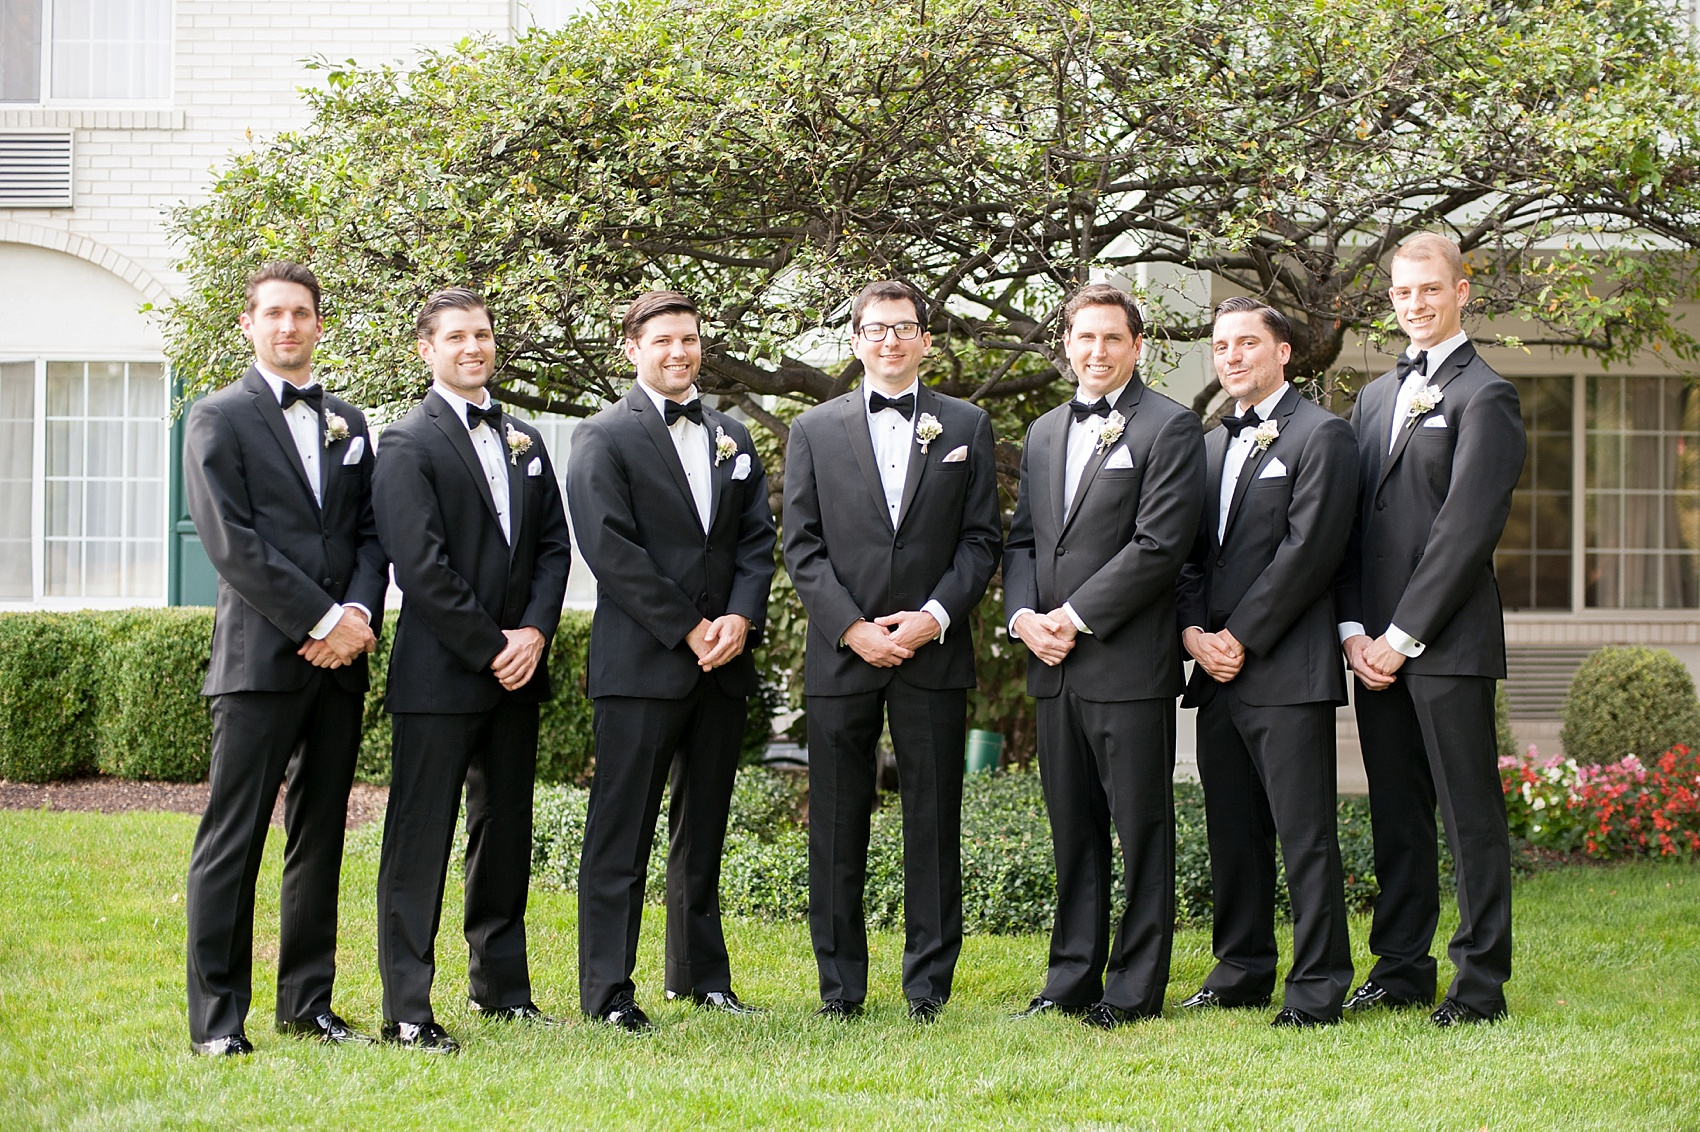 Groomsmen in Black by Vera Wang at The Conservatory at the Madison Hotel, New Jersey. Photos by Mikkel Paige Photography.